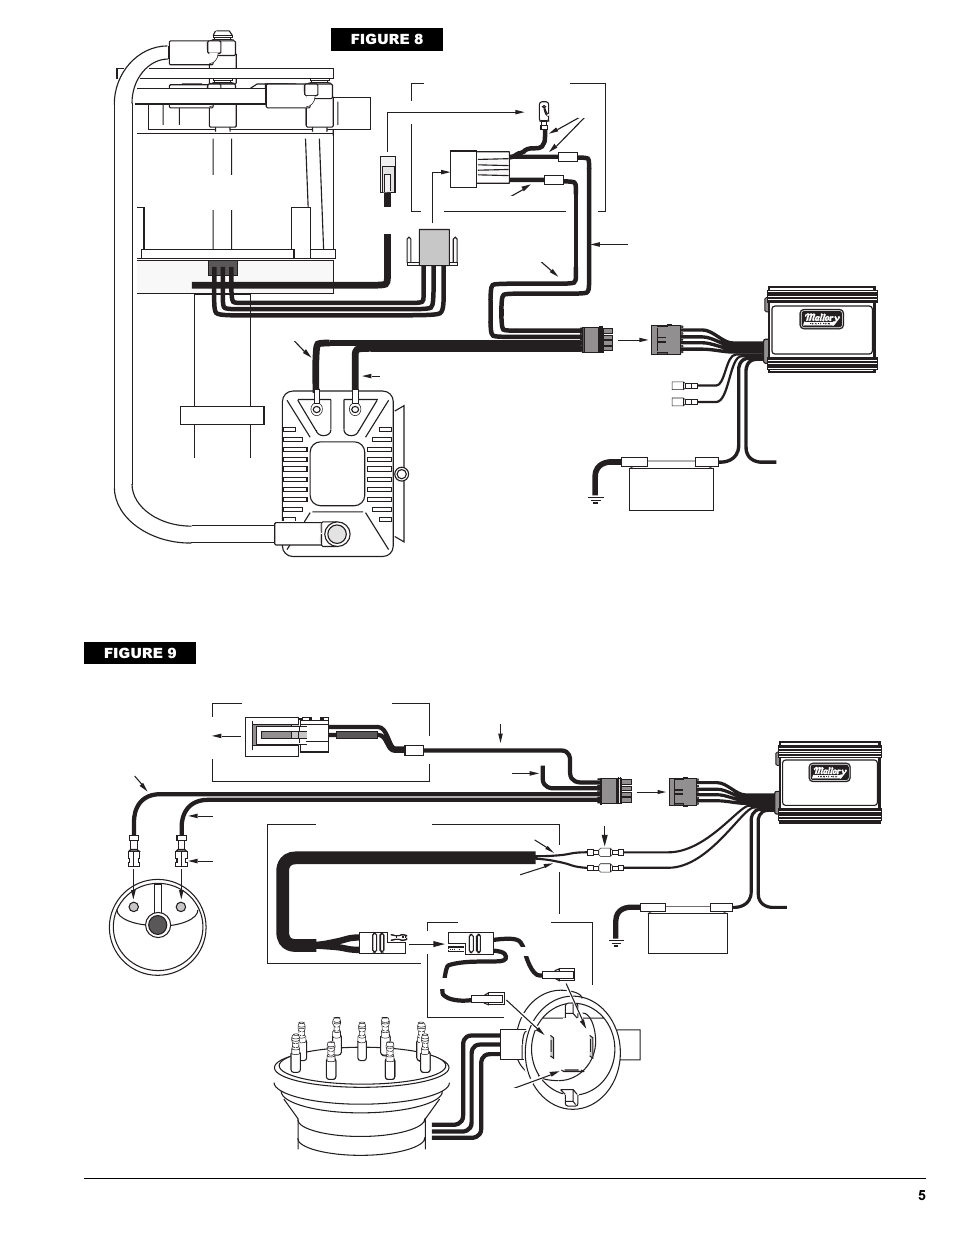 gm/delco hei distributor, ford and american motors, figure ... mallory hyfire6a wiring diagram mallory distributor wiring diagram with msd